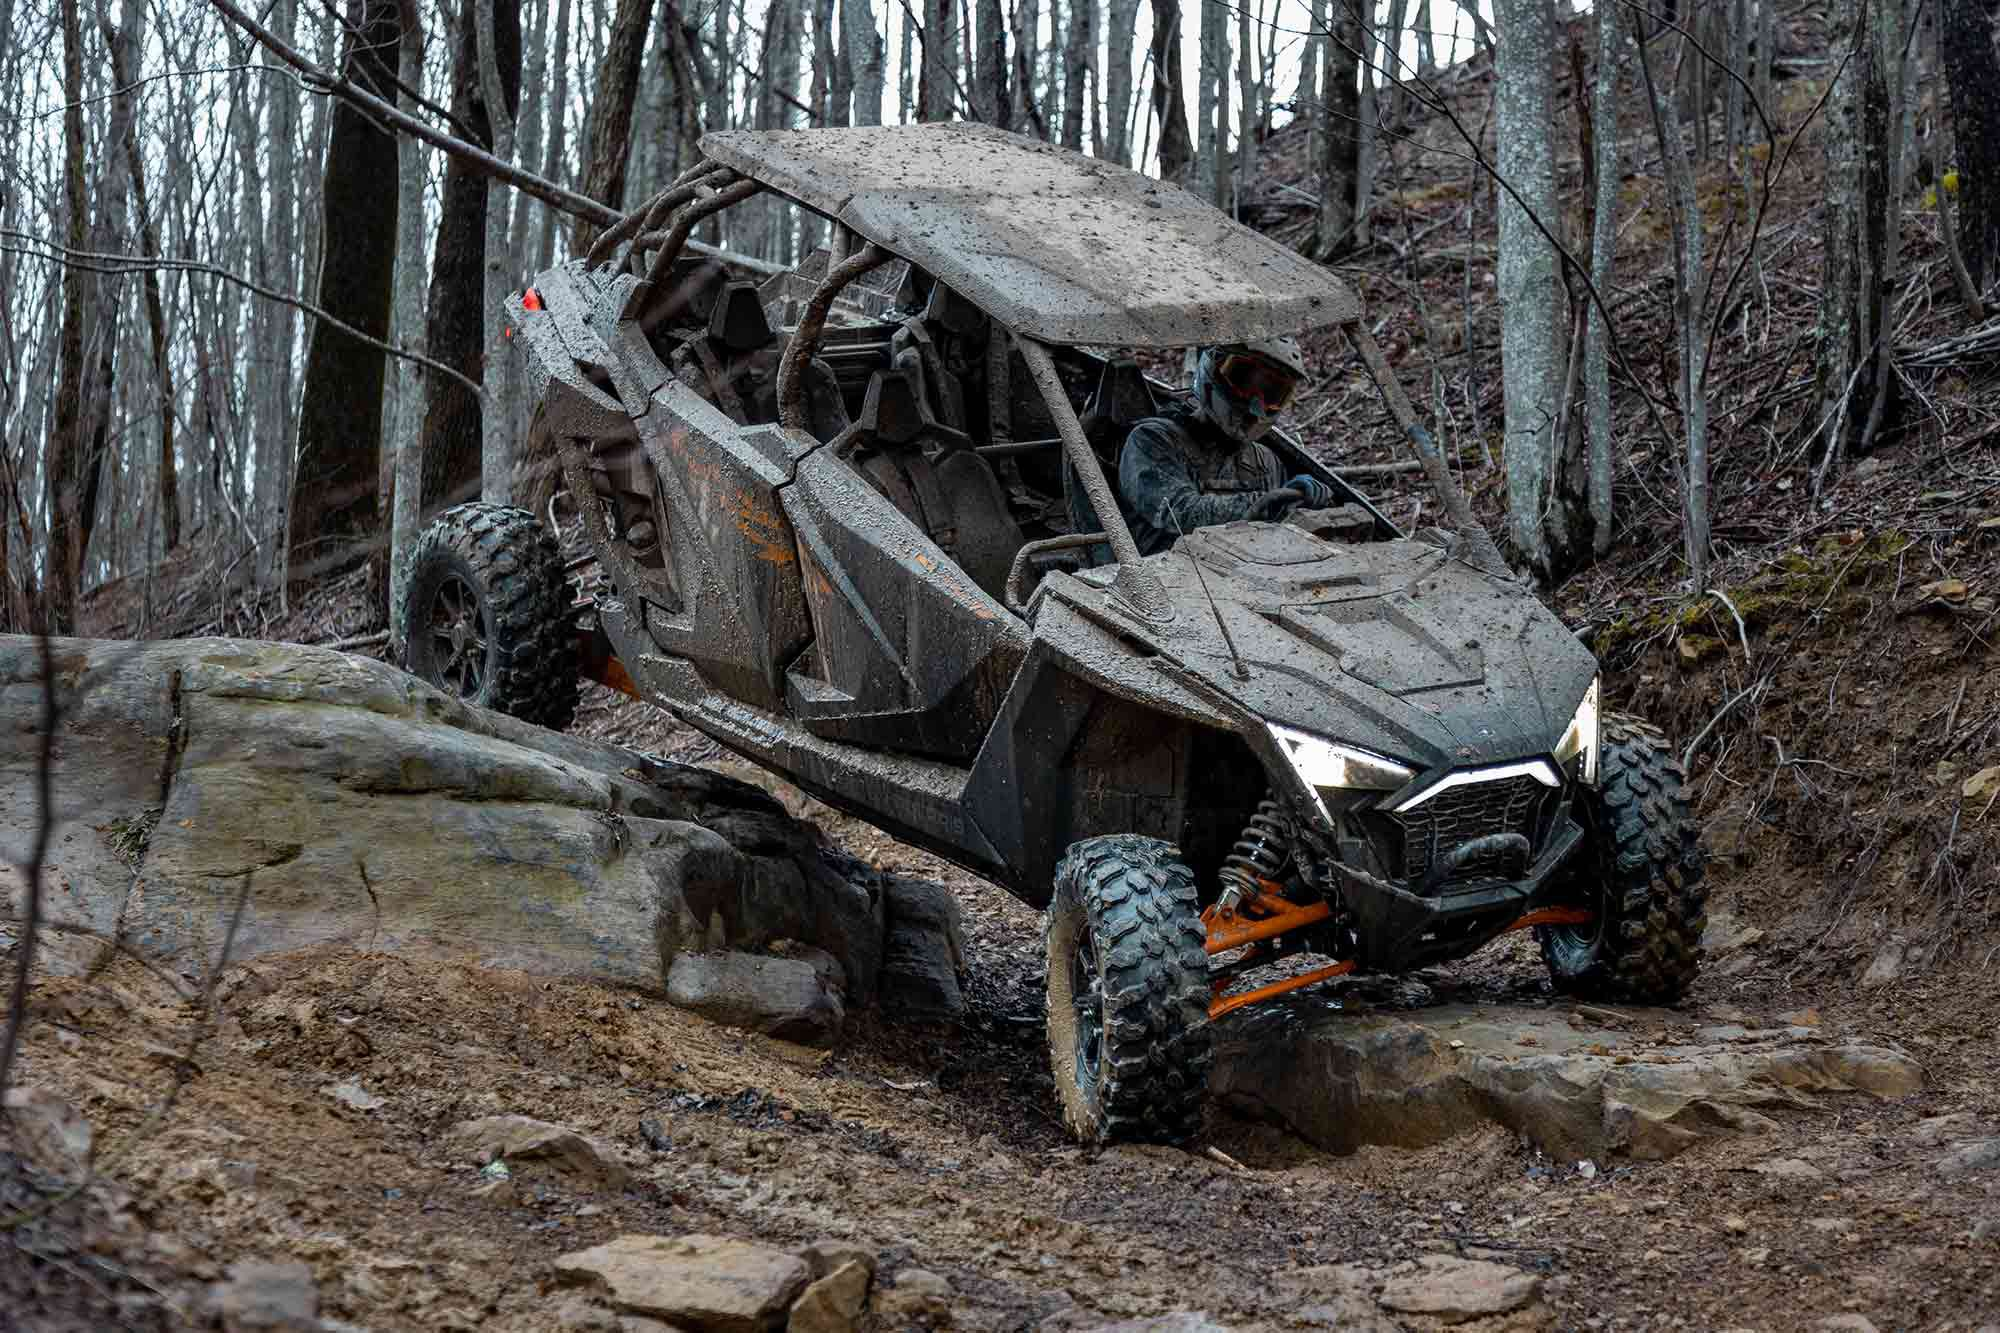 Polaris has had to face off against uncertain business terrain, from unprecedented demand to supplier shortages.